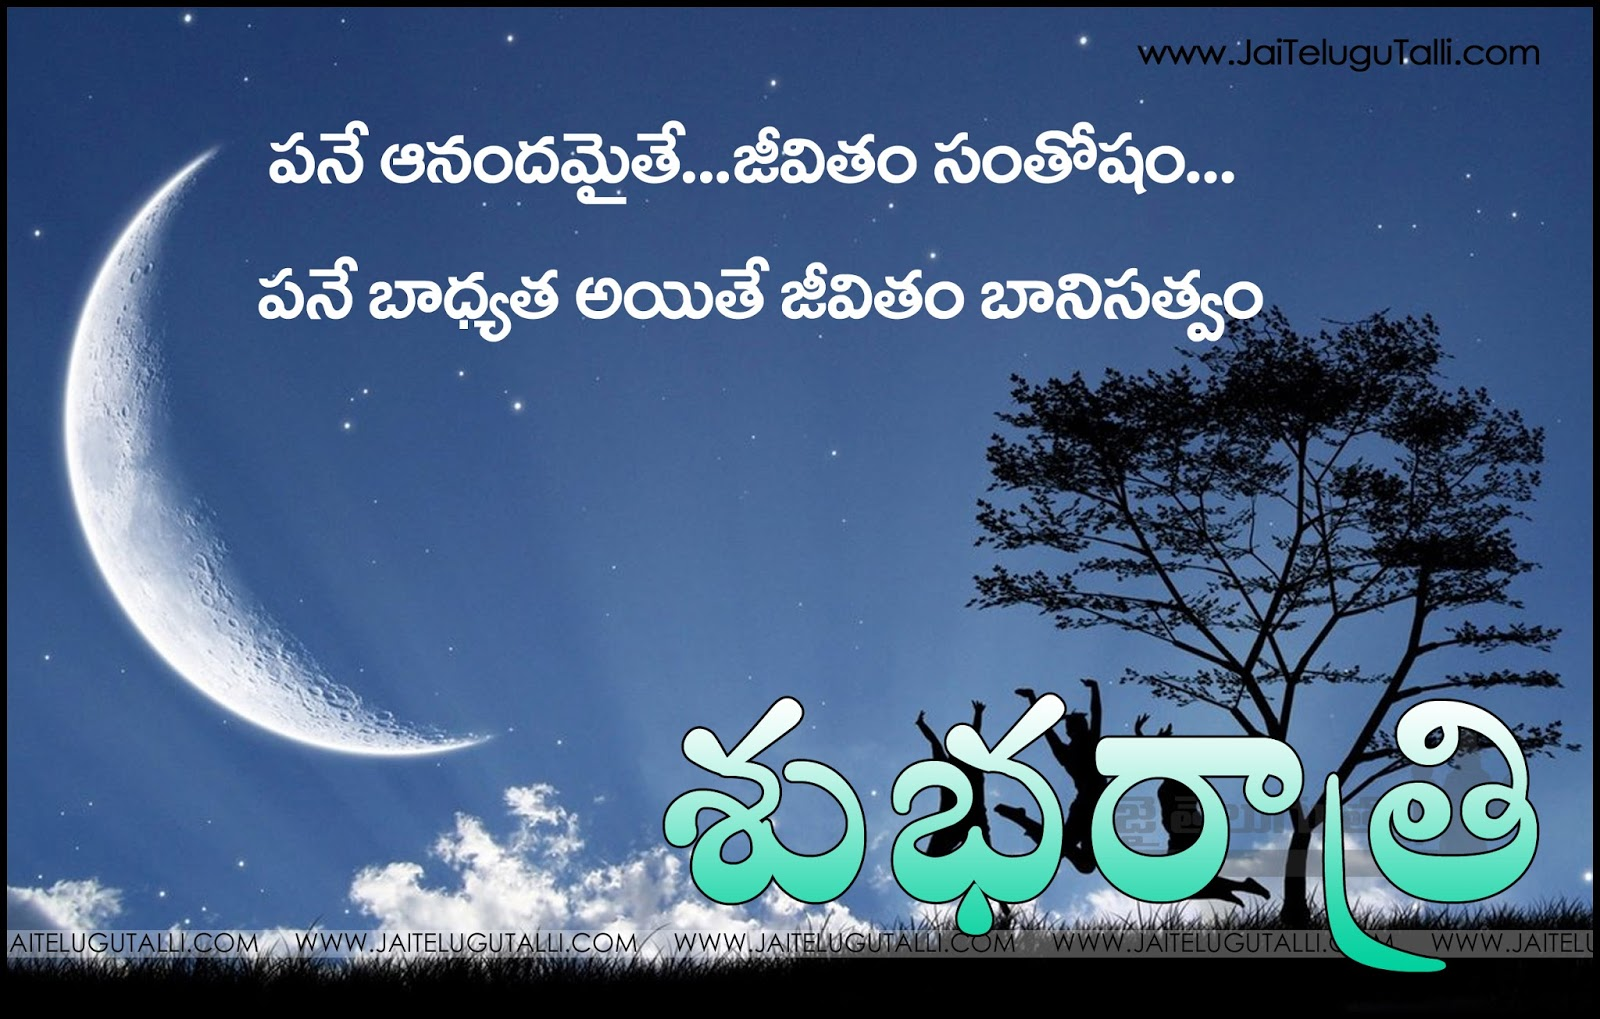 Inspirational Thoughts About Life Telugu Good Night Quotes On Life Inspirational Thoughts And